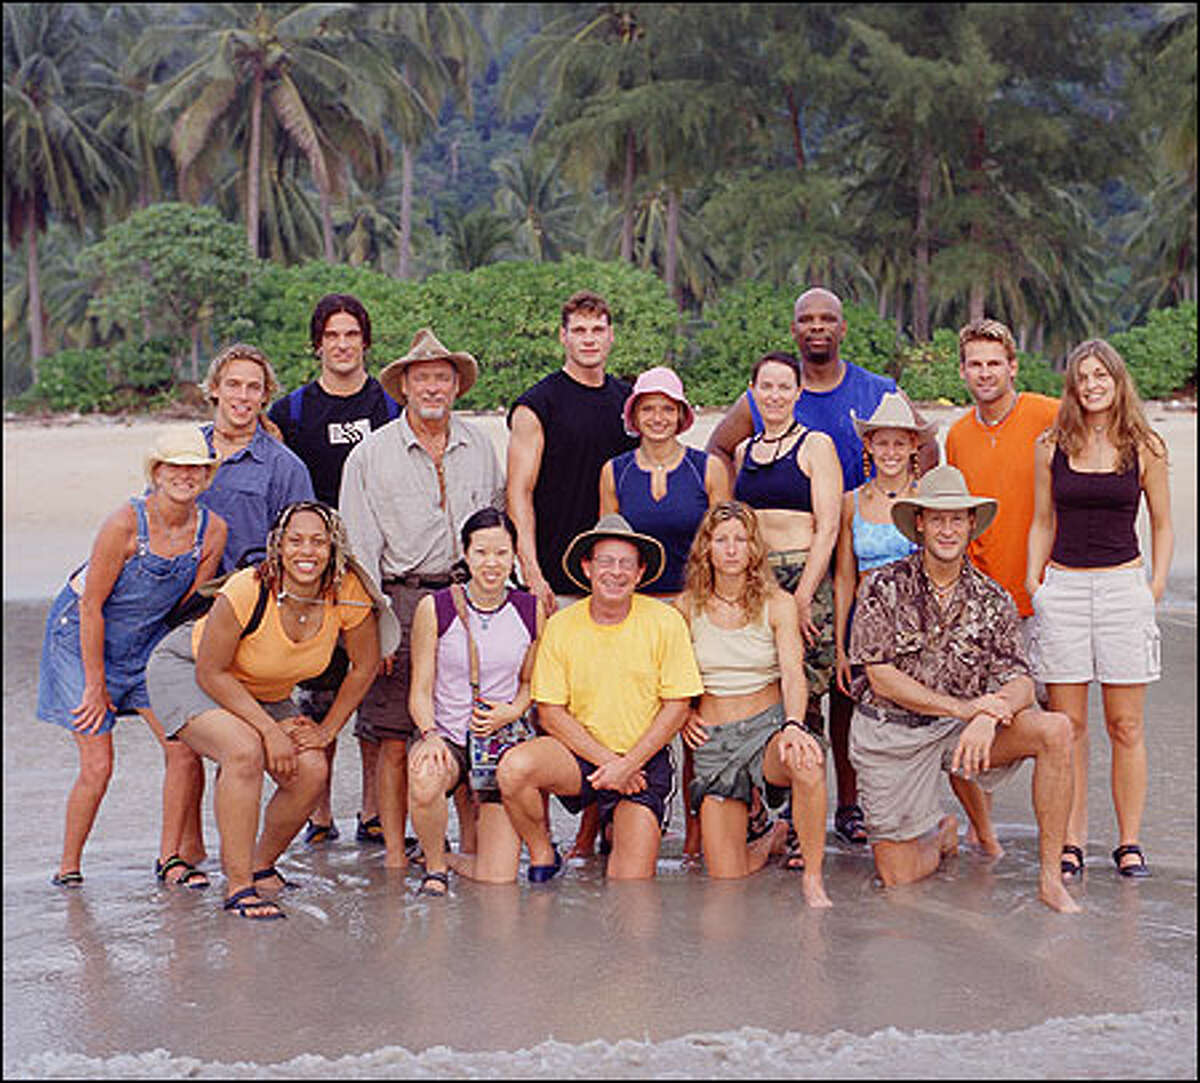 The Survivor: Thailand castaways: (top l-r) Jan Gentry, Jed Hildebrand, Robb Zbacnik, Jake Billingsley, Ken Stafford, Erin Collins, Helen Glover, Ted Rogers, Jr., Penny Ramsey, Brian Heldik and Tanya Vance. (Bottom l-r) Ghandia Johnson, Shii Ann Huang, Clay Jordan, John Raymond and Stephanie Dill.